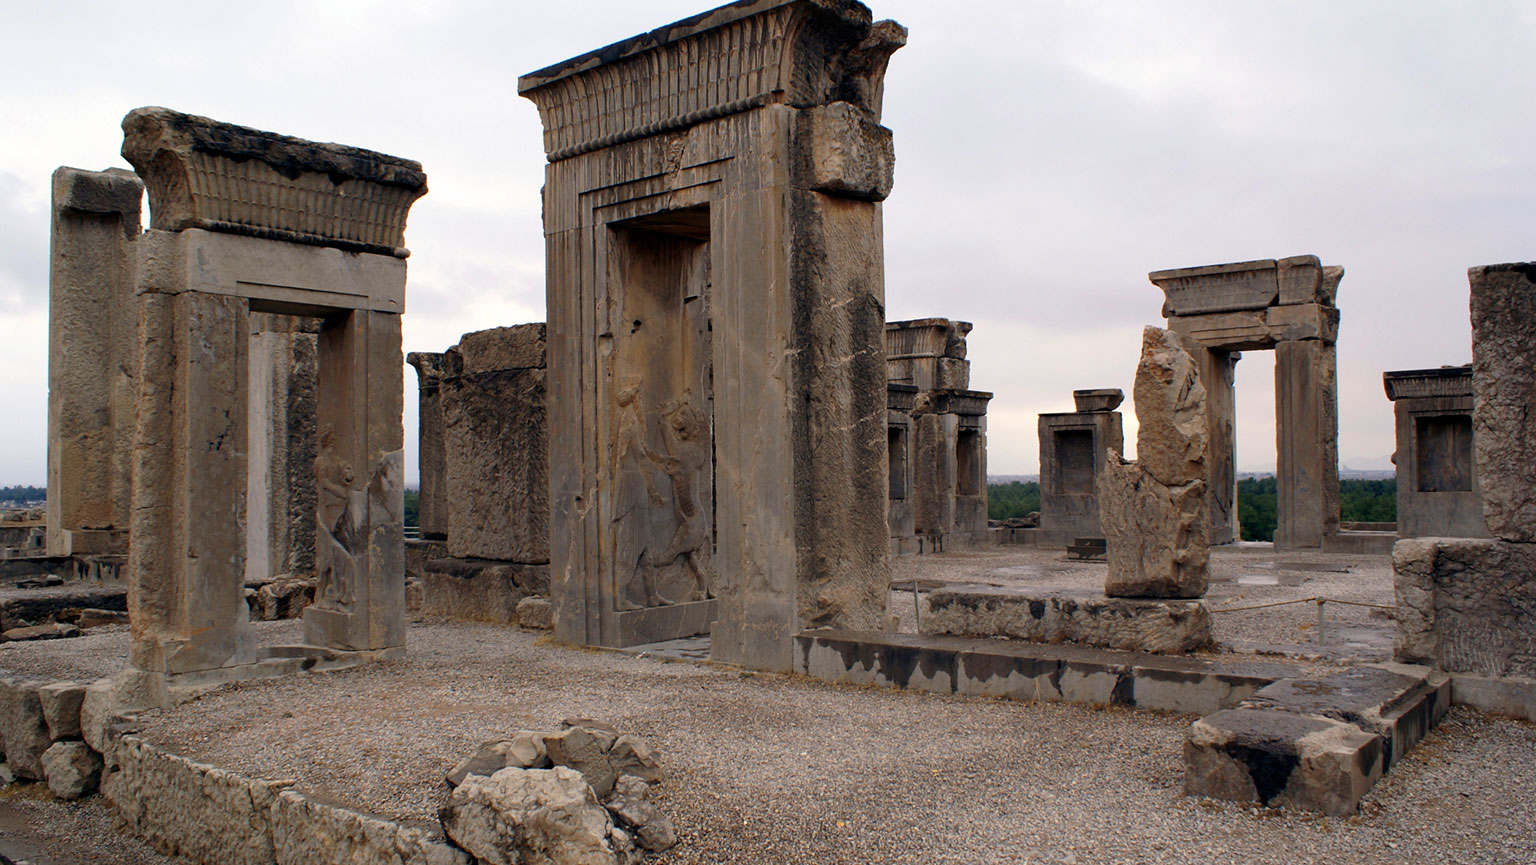 The Ancient City of Persepolis